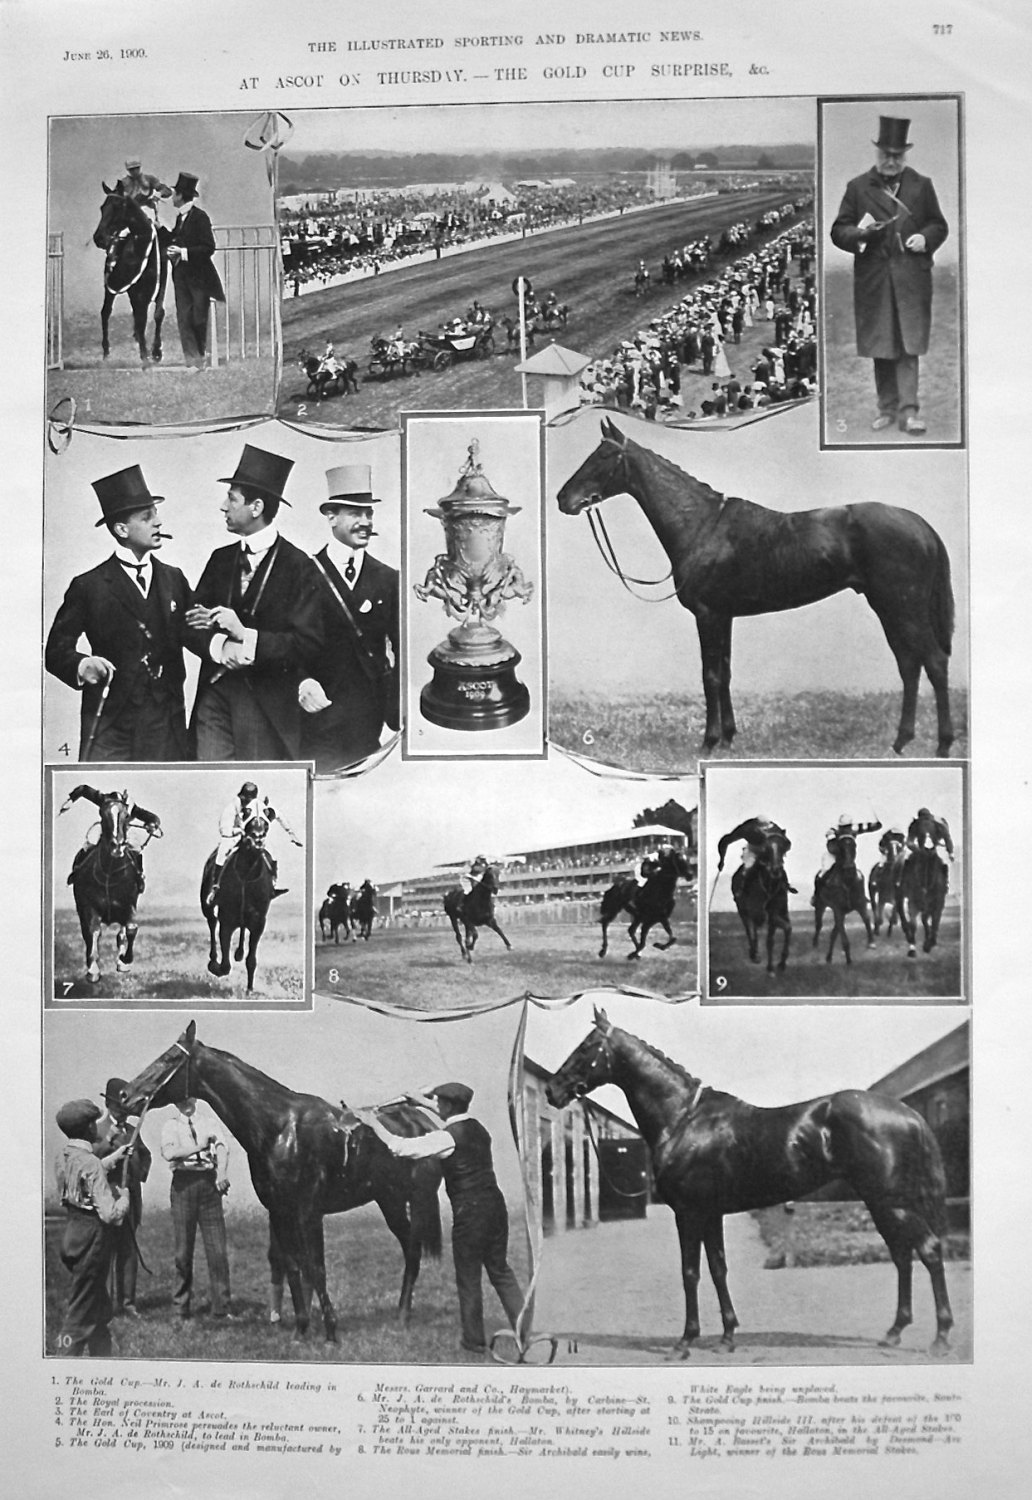 At Ascot on Thursday. - A Gold Cup Surprise, & c. 1909